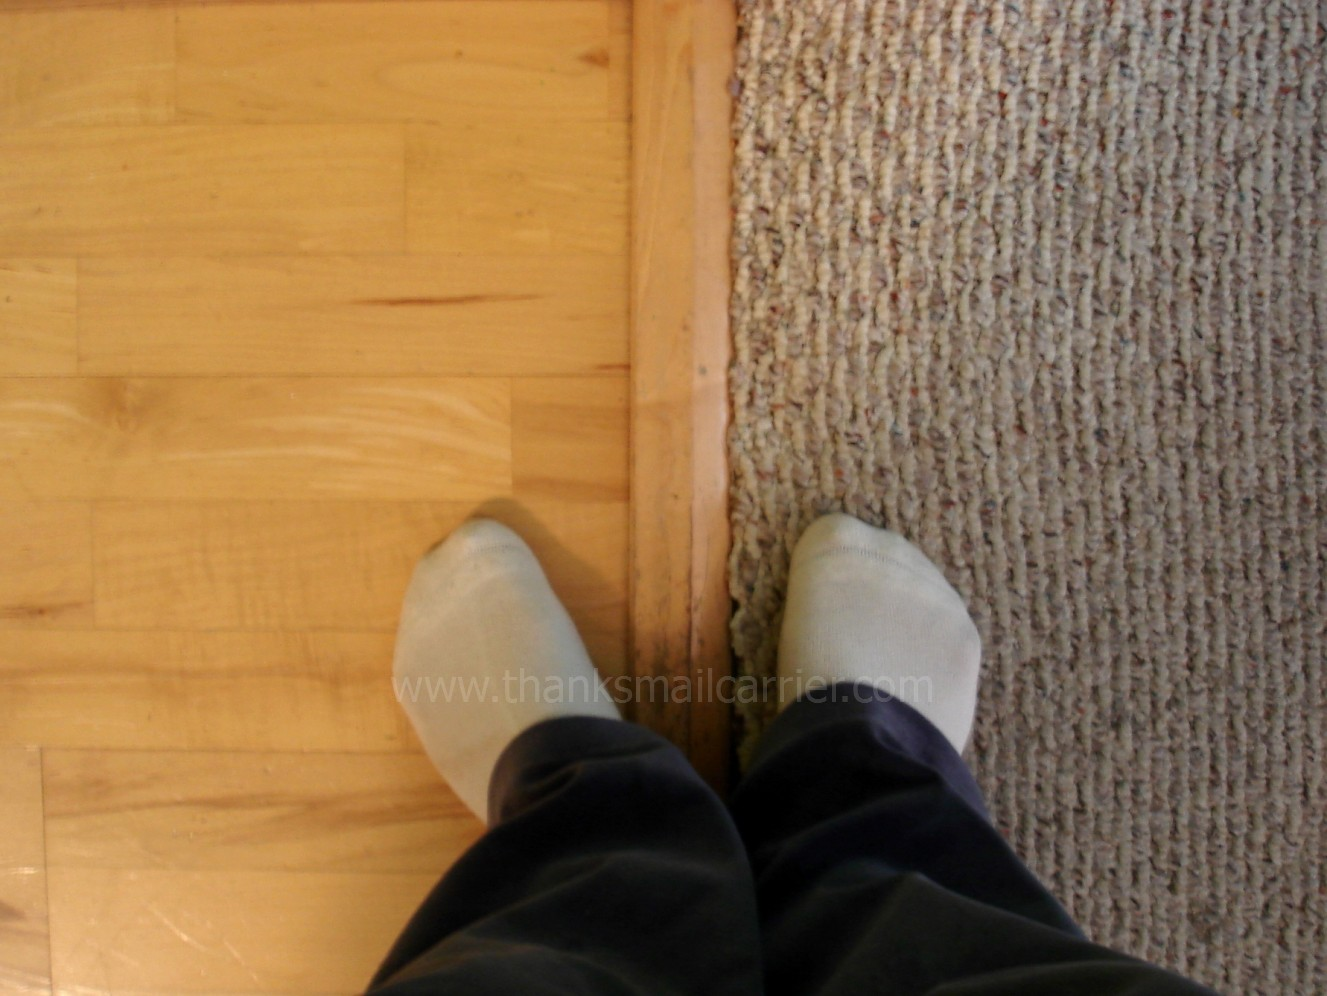 Thanks, Mail Carrier | Floors: Carpet, Wood, or Rug?